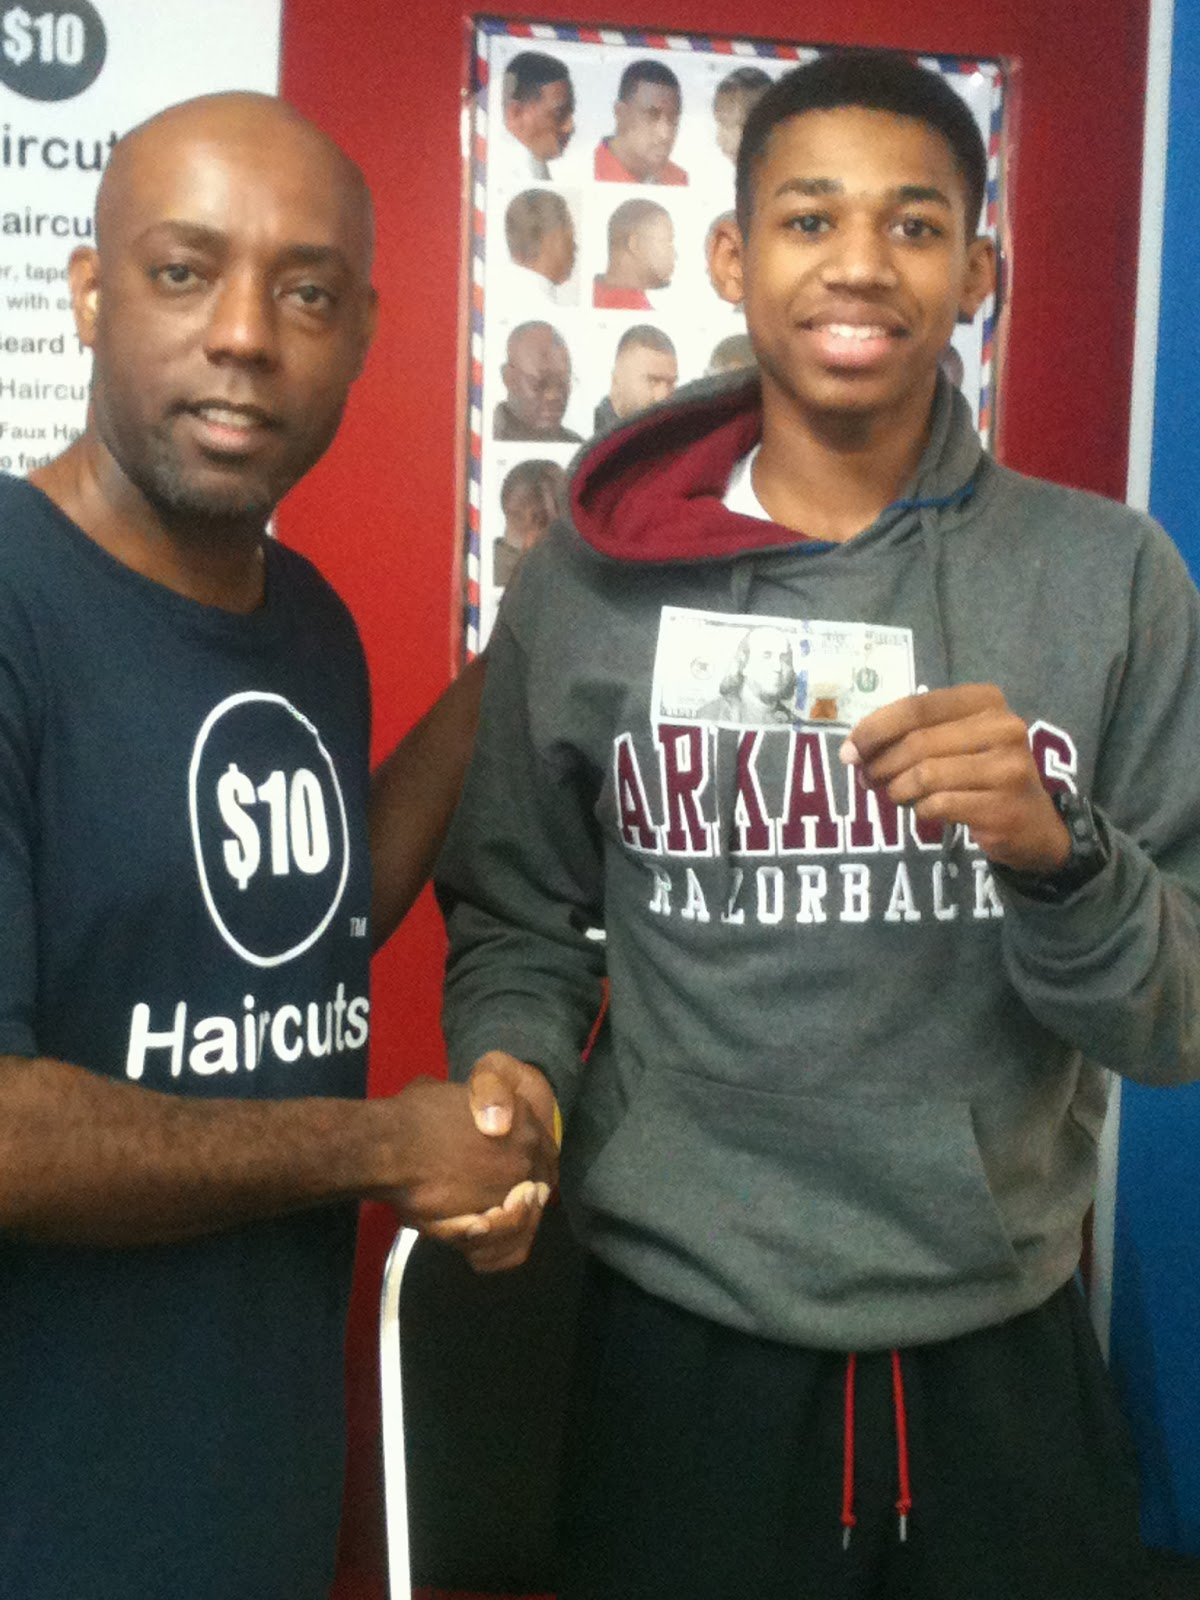 The Best 10 Dollar Haircuts 76011 100 00 Cash Goes To Julius Pictures Original 1024 x 768